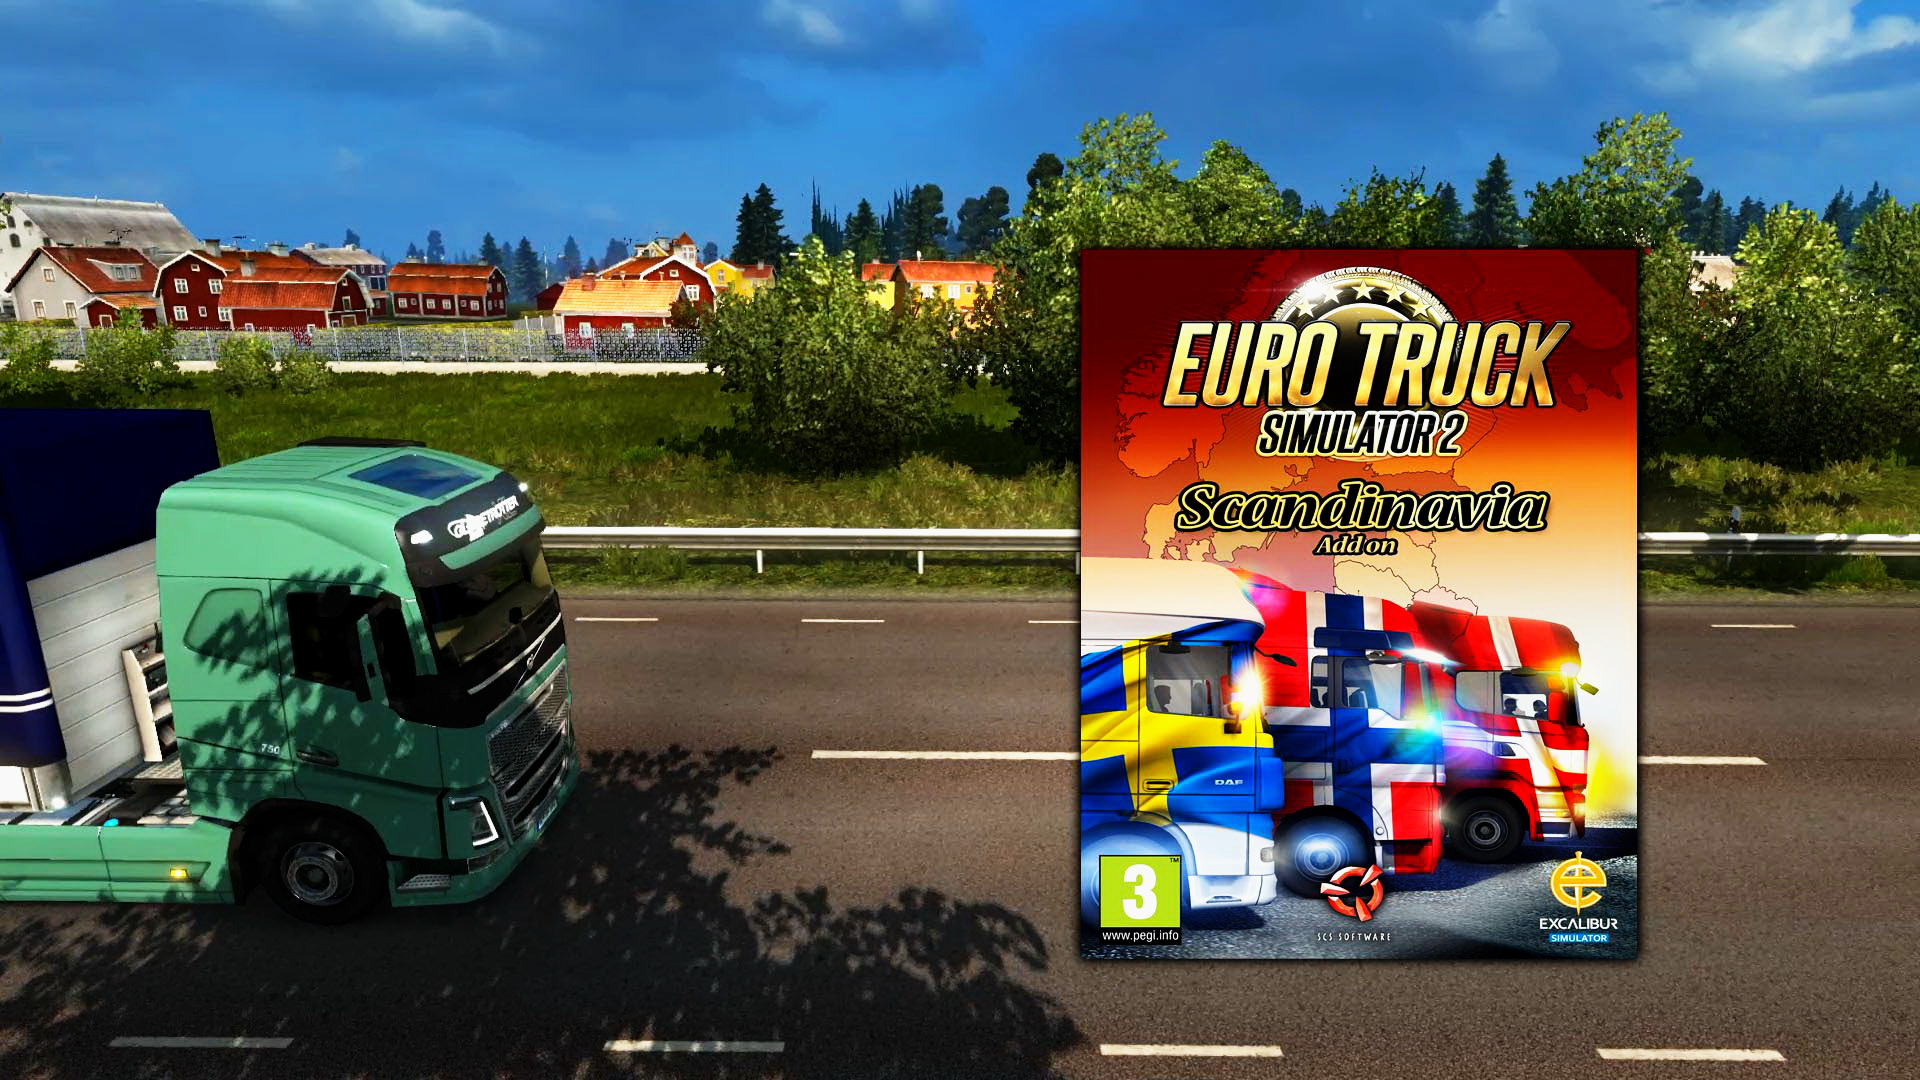 Unofficial trailer for DLC Scandinavia + New details for ETS 2